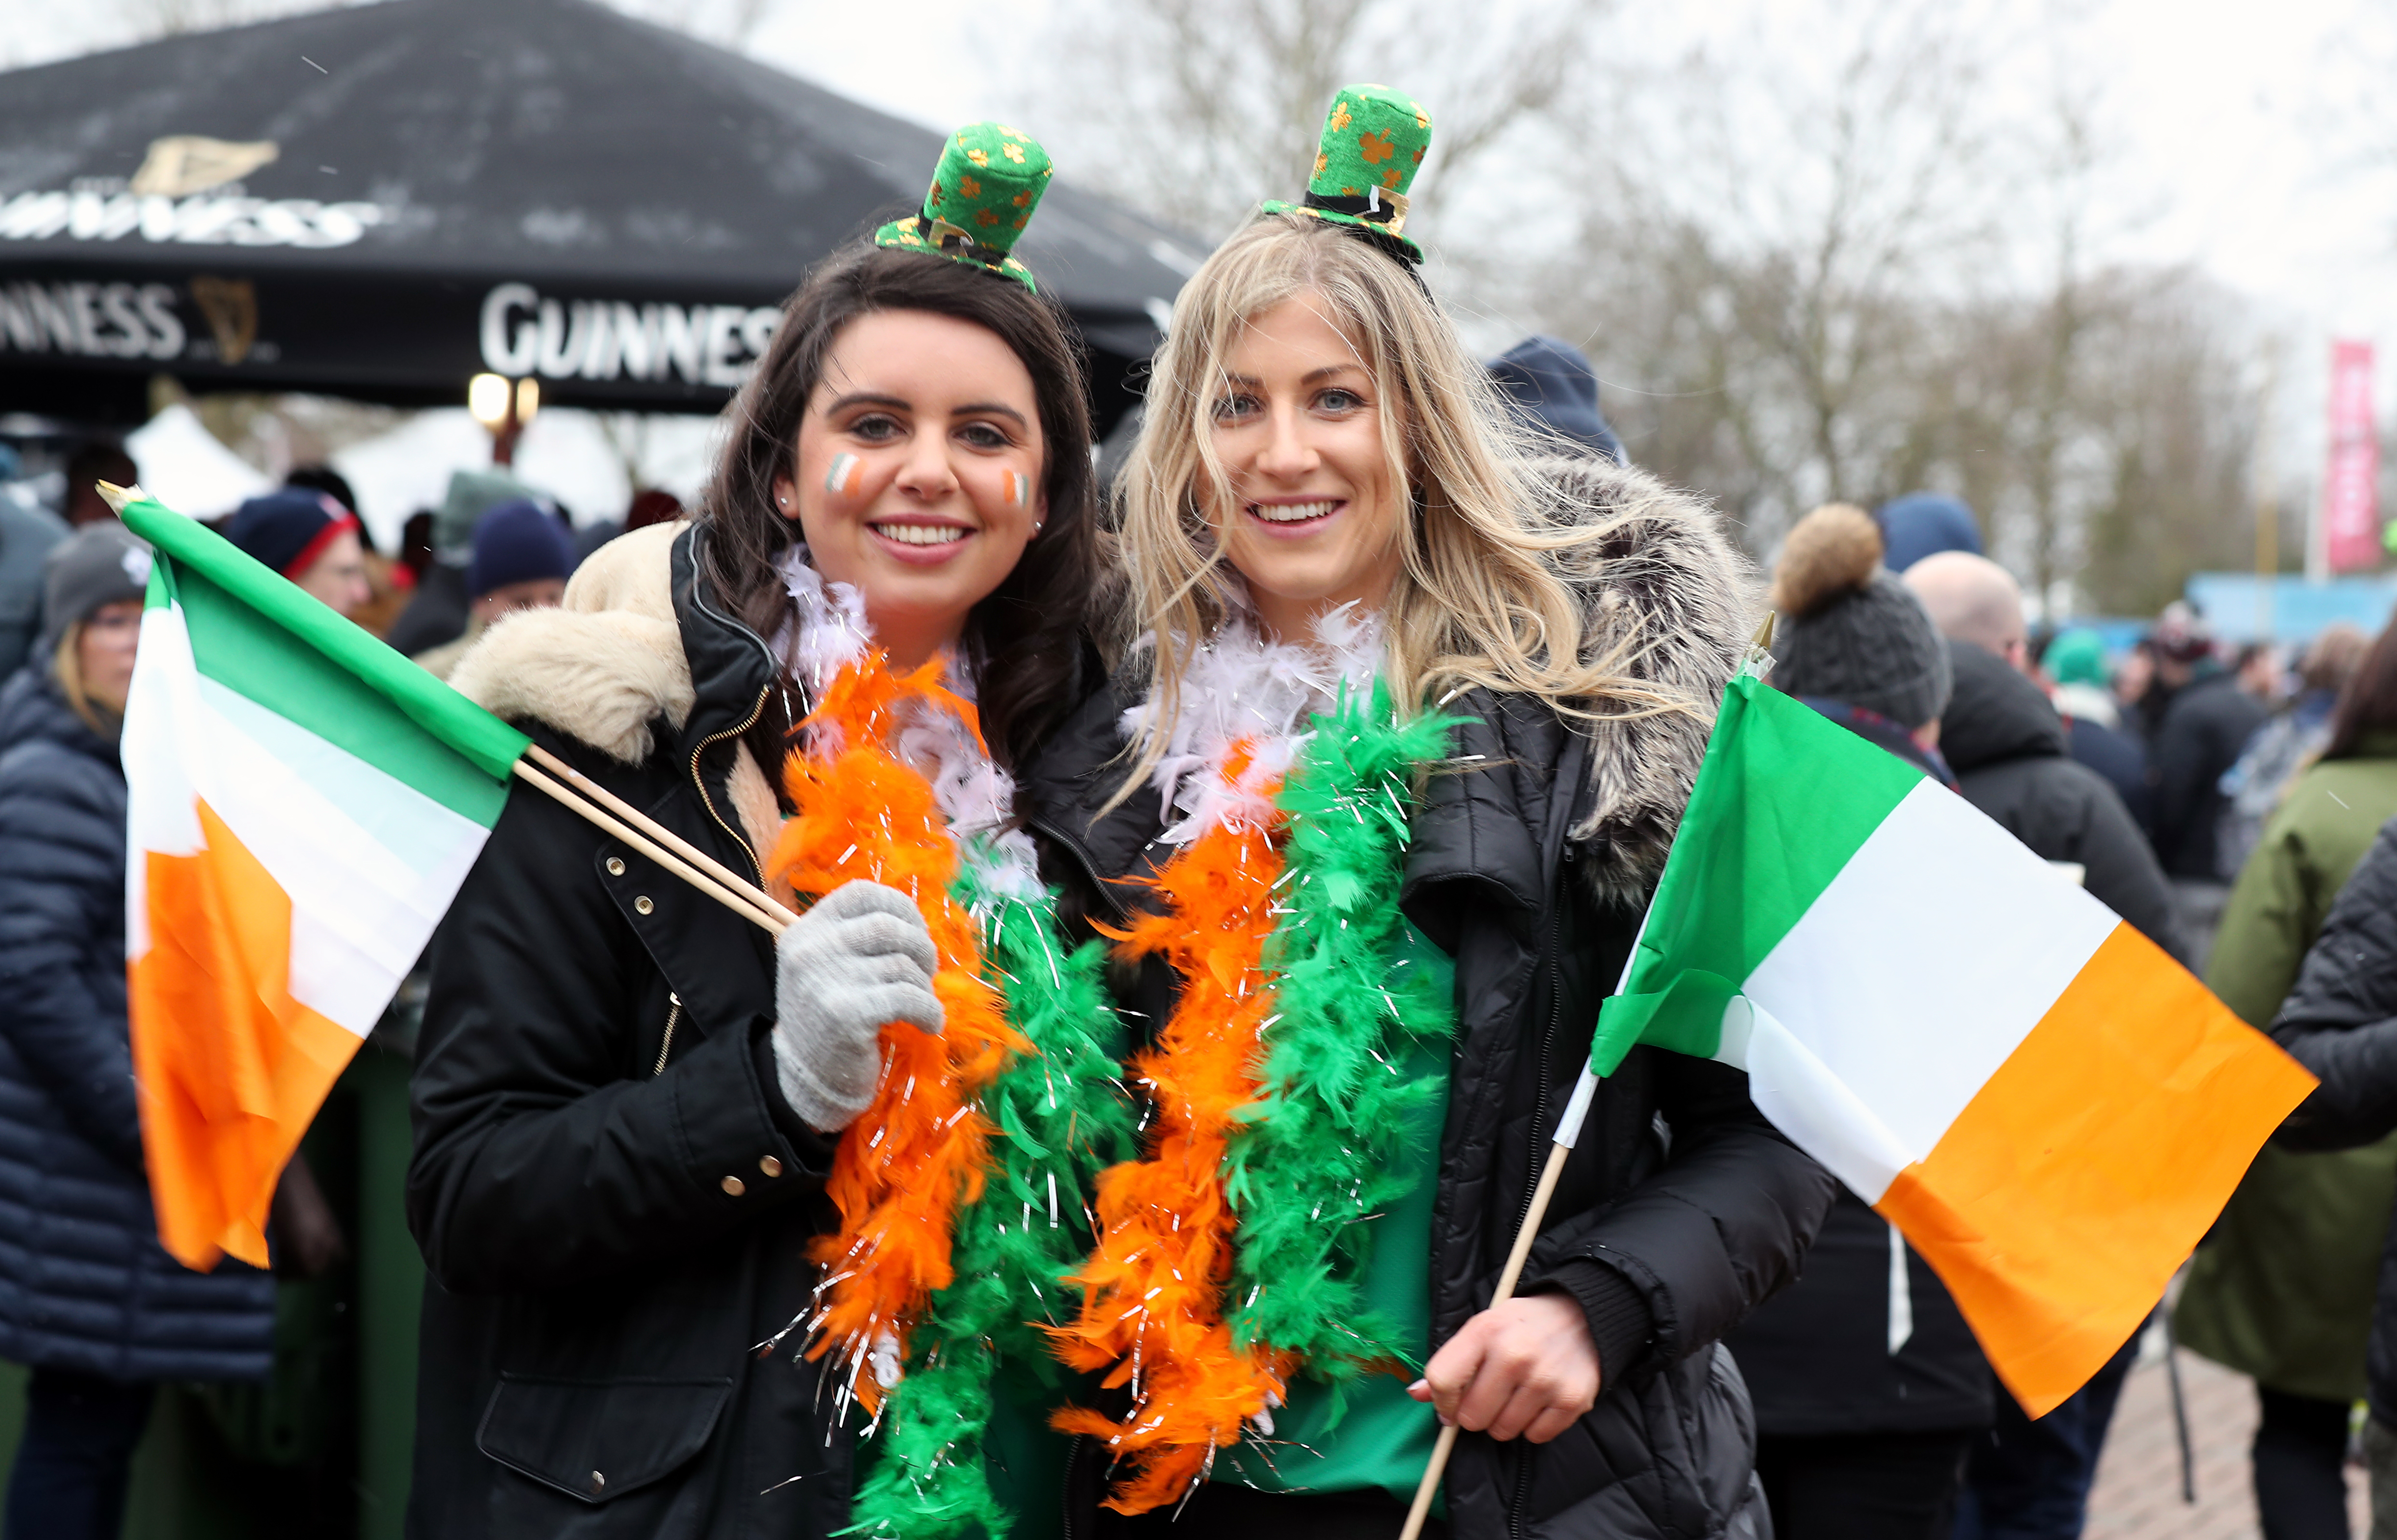 Ireland fans prior to the NatWest 6 Nations match at Twickenham Stadium, London